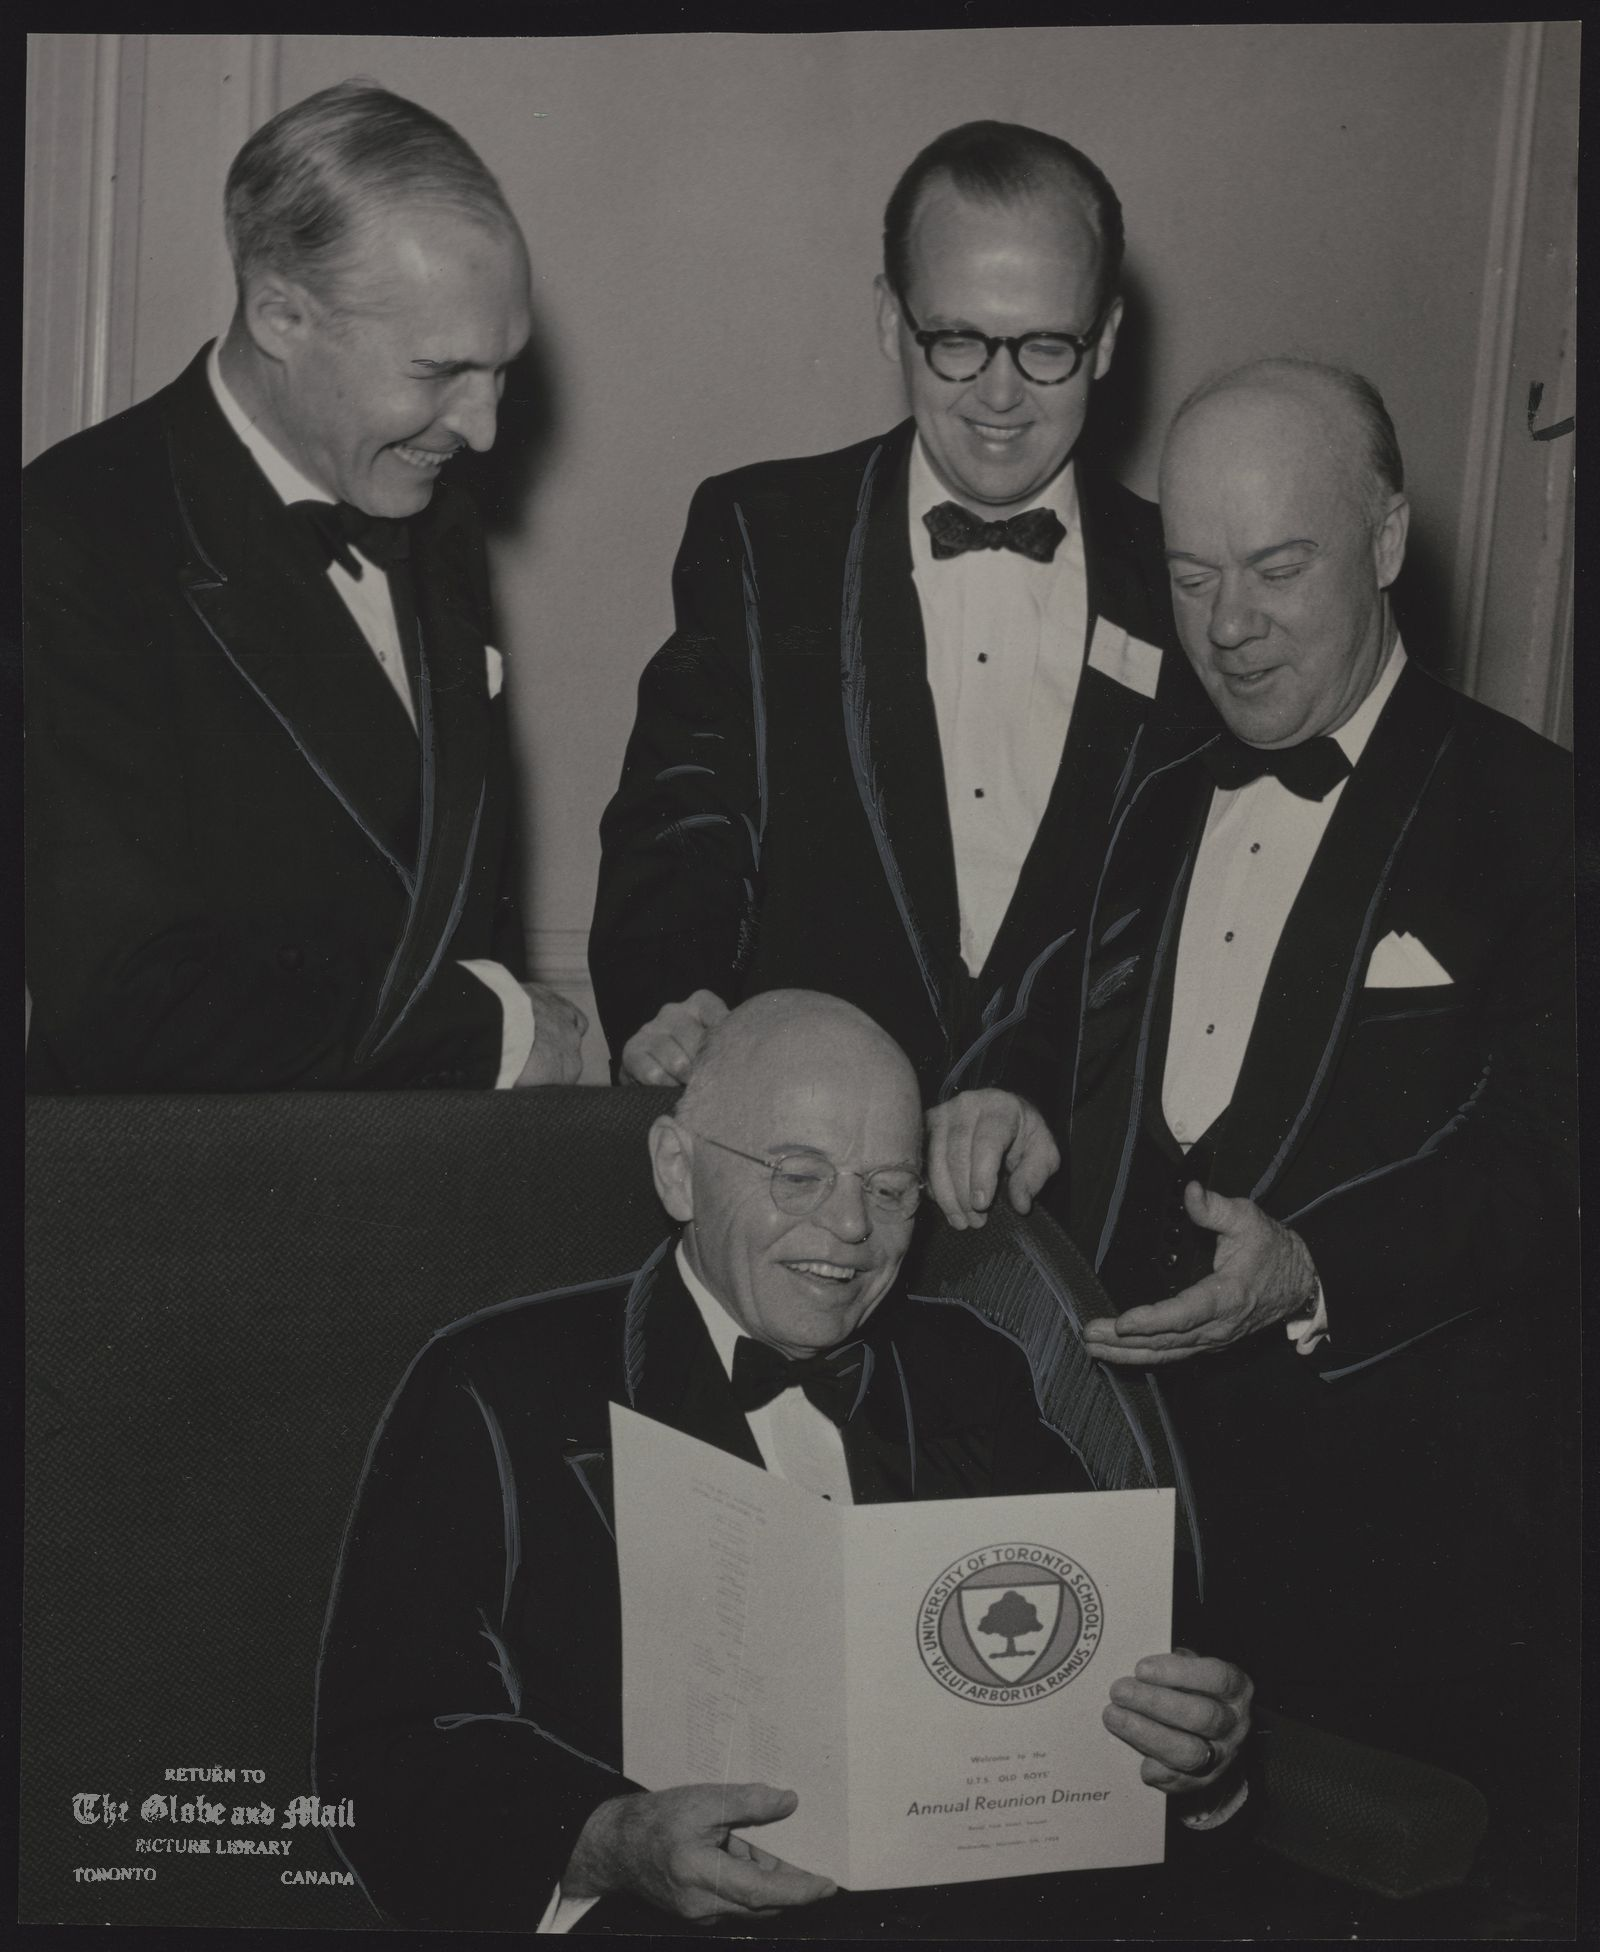 DEAN A. C. LEWIS For many years headmaster of UTS now retired. UTS Boys at Annual Dinner and Get-Together. Standing, from left, are: Chief Justice Porter, class of 1918; James Renwick, class of 1935 and president of the Old Boys Association, and Senator Joseph Sullivan, class of 1919. Seated is Dean A.C. Lewis, for many years headmaster of the school. Now retired, he was guest of honor.